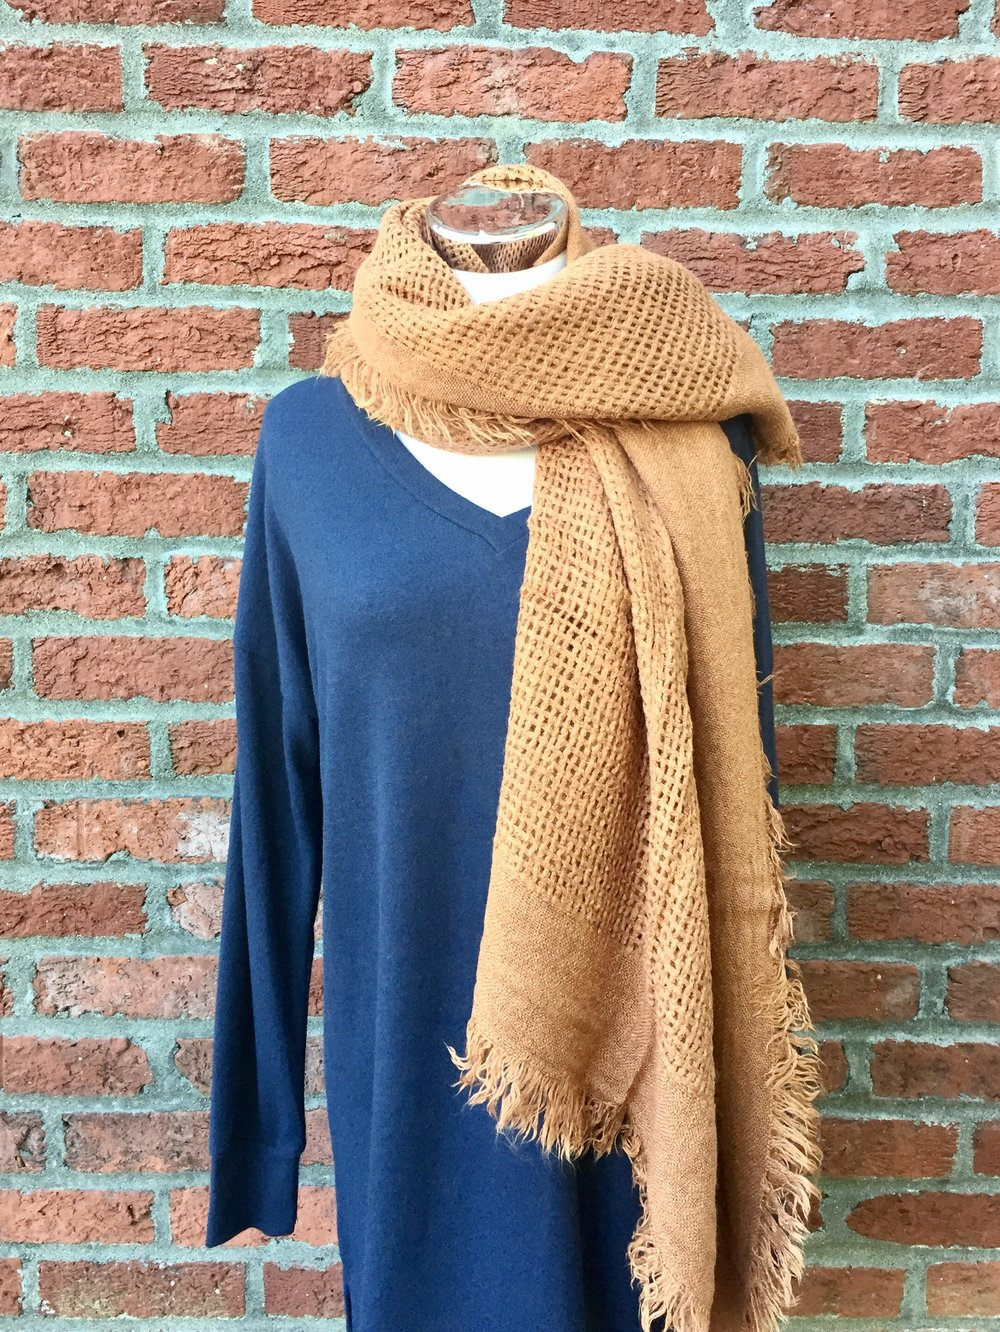 Reb + J Sweater ($32) with Orange Scarf ($21)